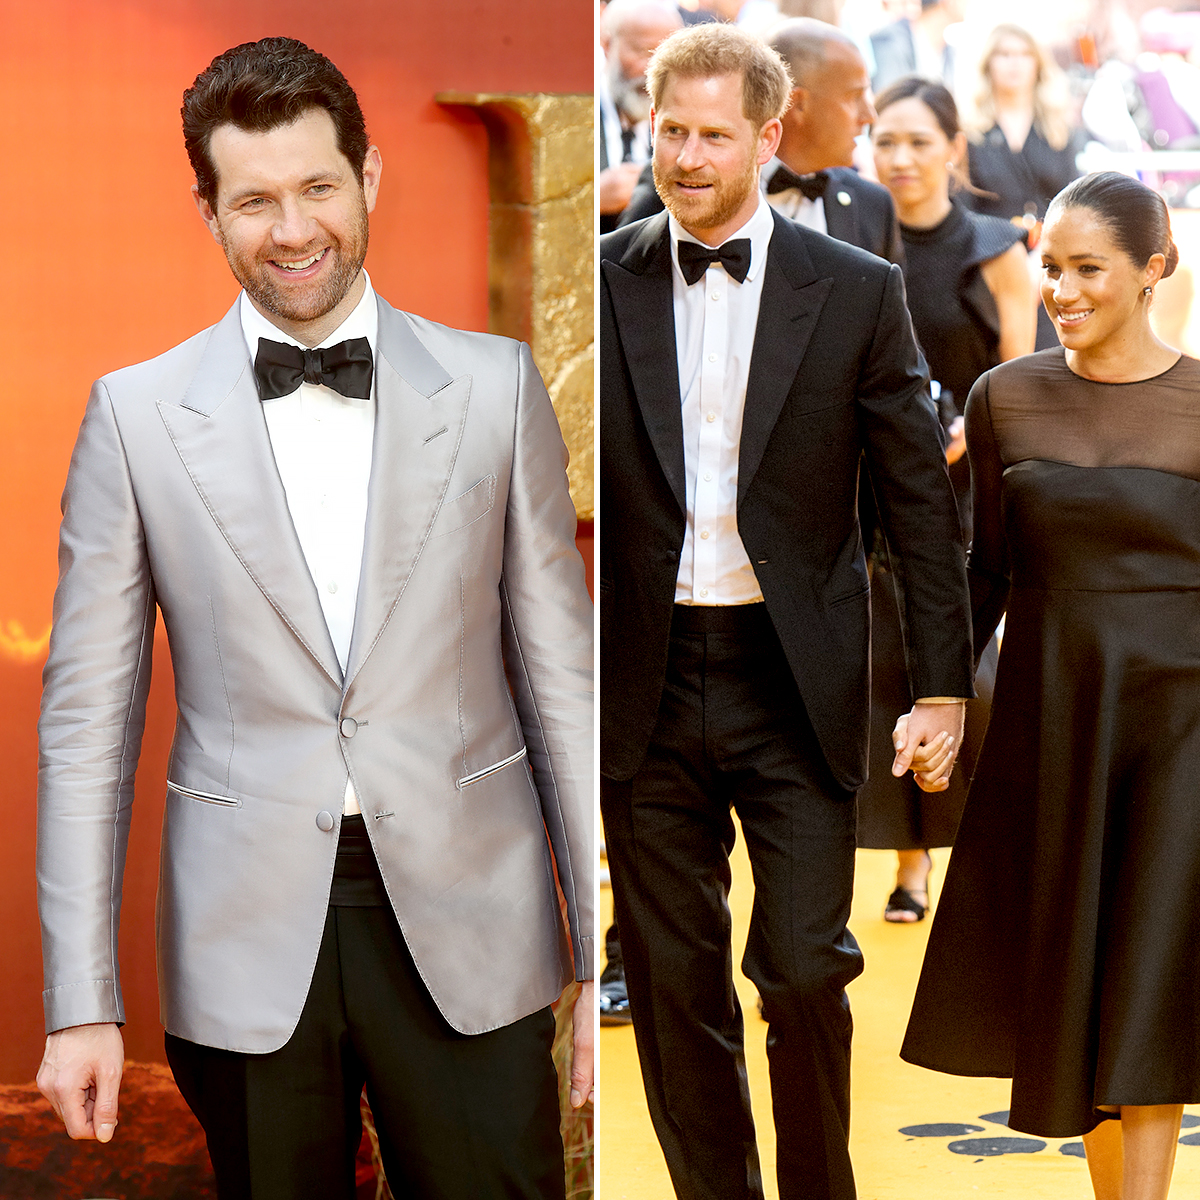 Billy-Eichner-Rehearse-What-He'll-Say-to-Meghan-and-Harry